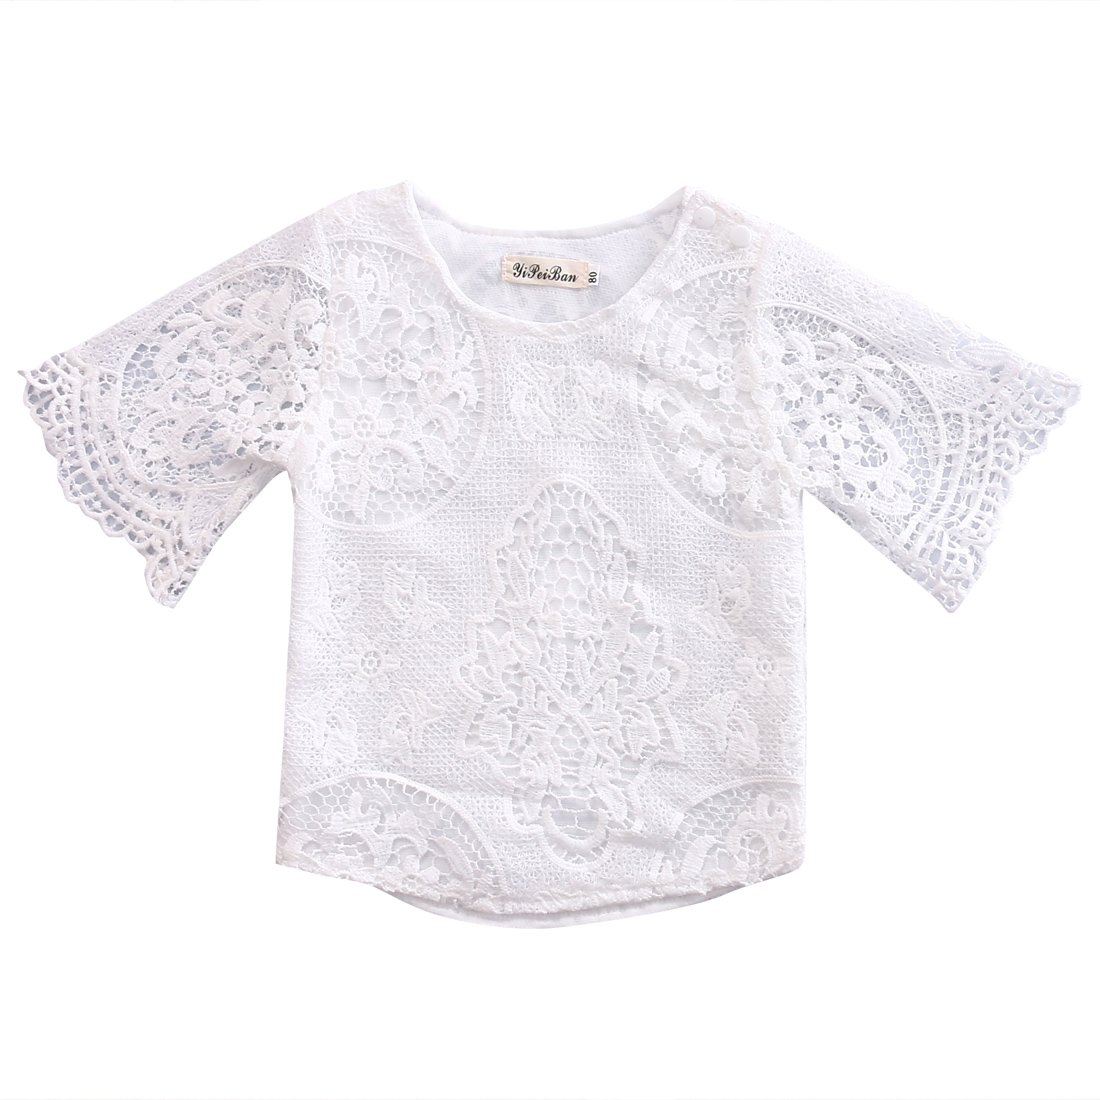 Kids Baby Girls Lace Hollow Tops T-shirt 1/2 Sleeve Blouse White Outfit Set, 3M-3Y